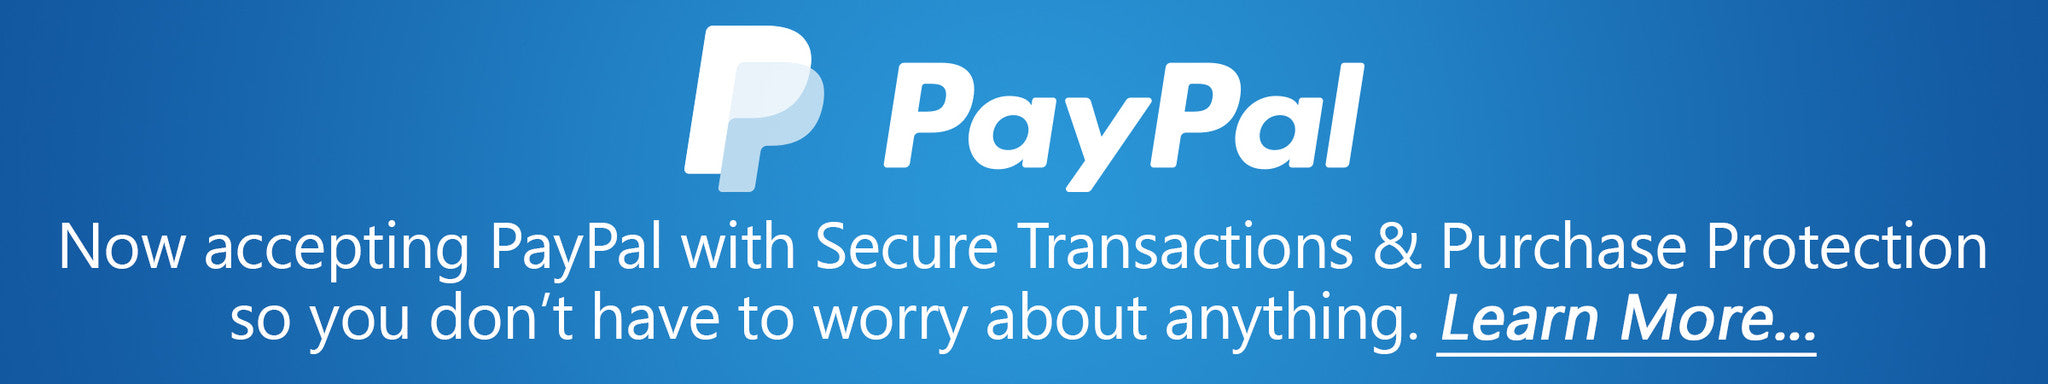 PayPal Benefits